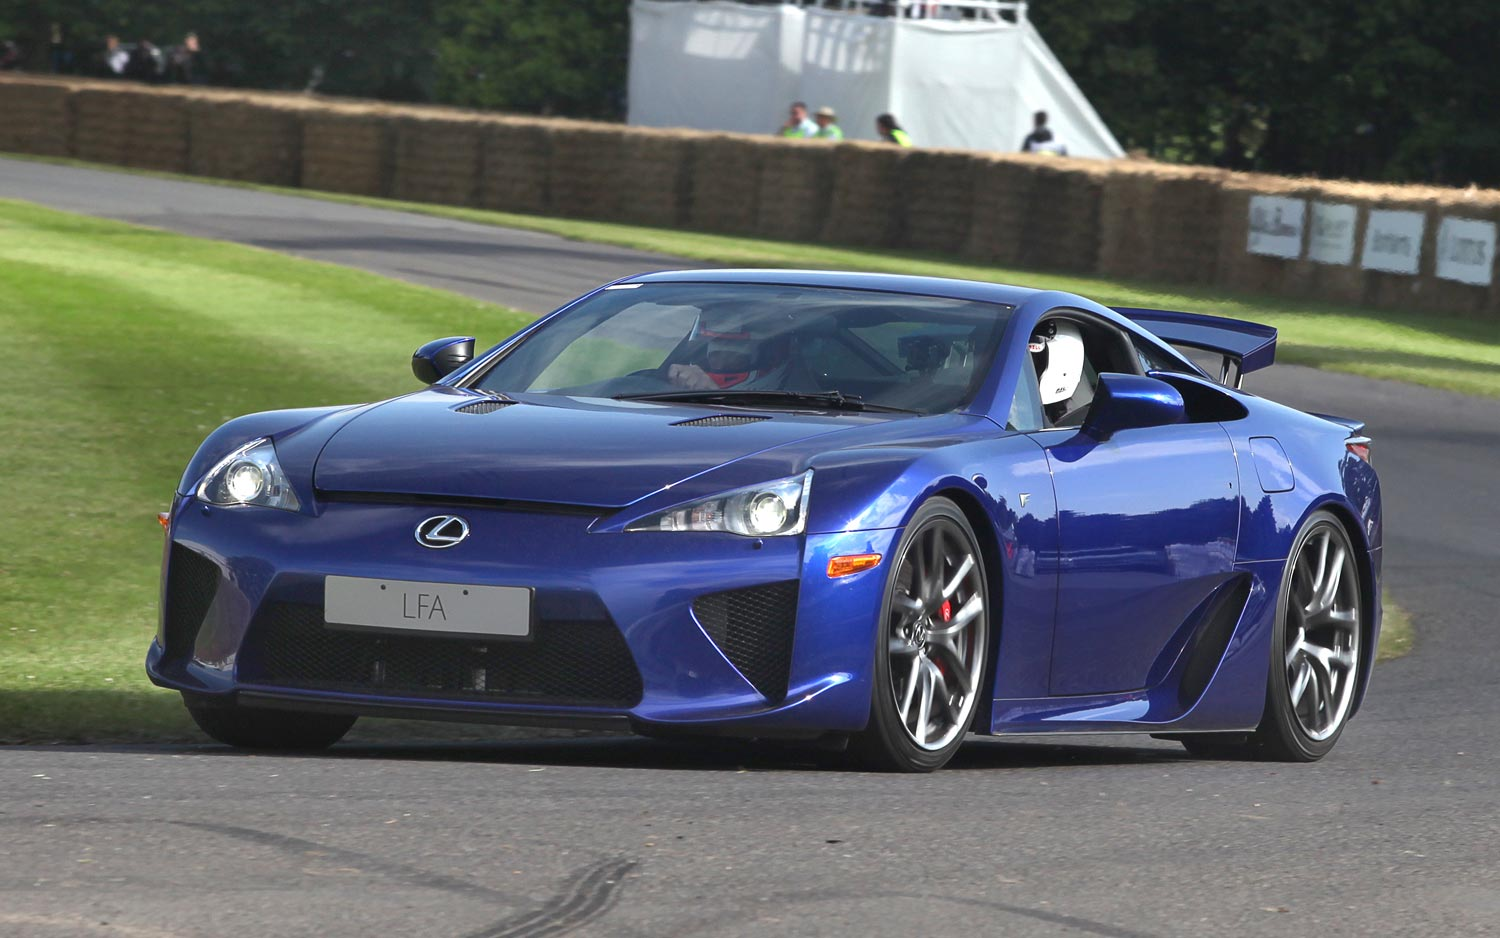 That's All: Lexus Built Its 500th And Final LFA Supercar